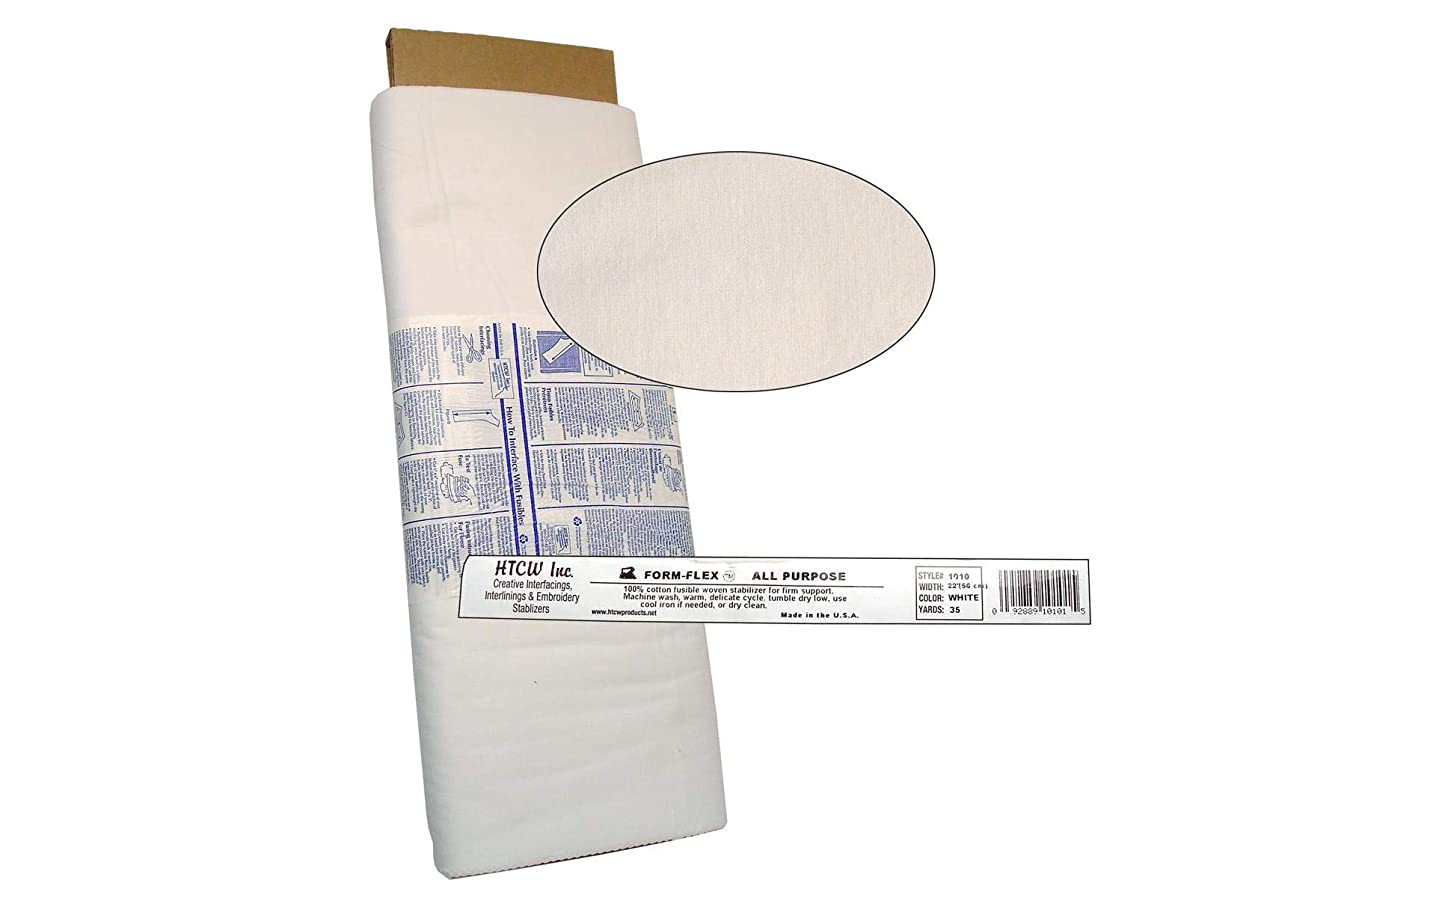 Handler Textile Corp. 1010-1 White interfacing